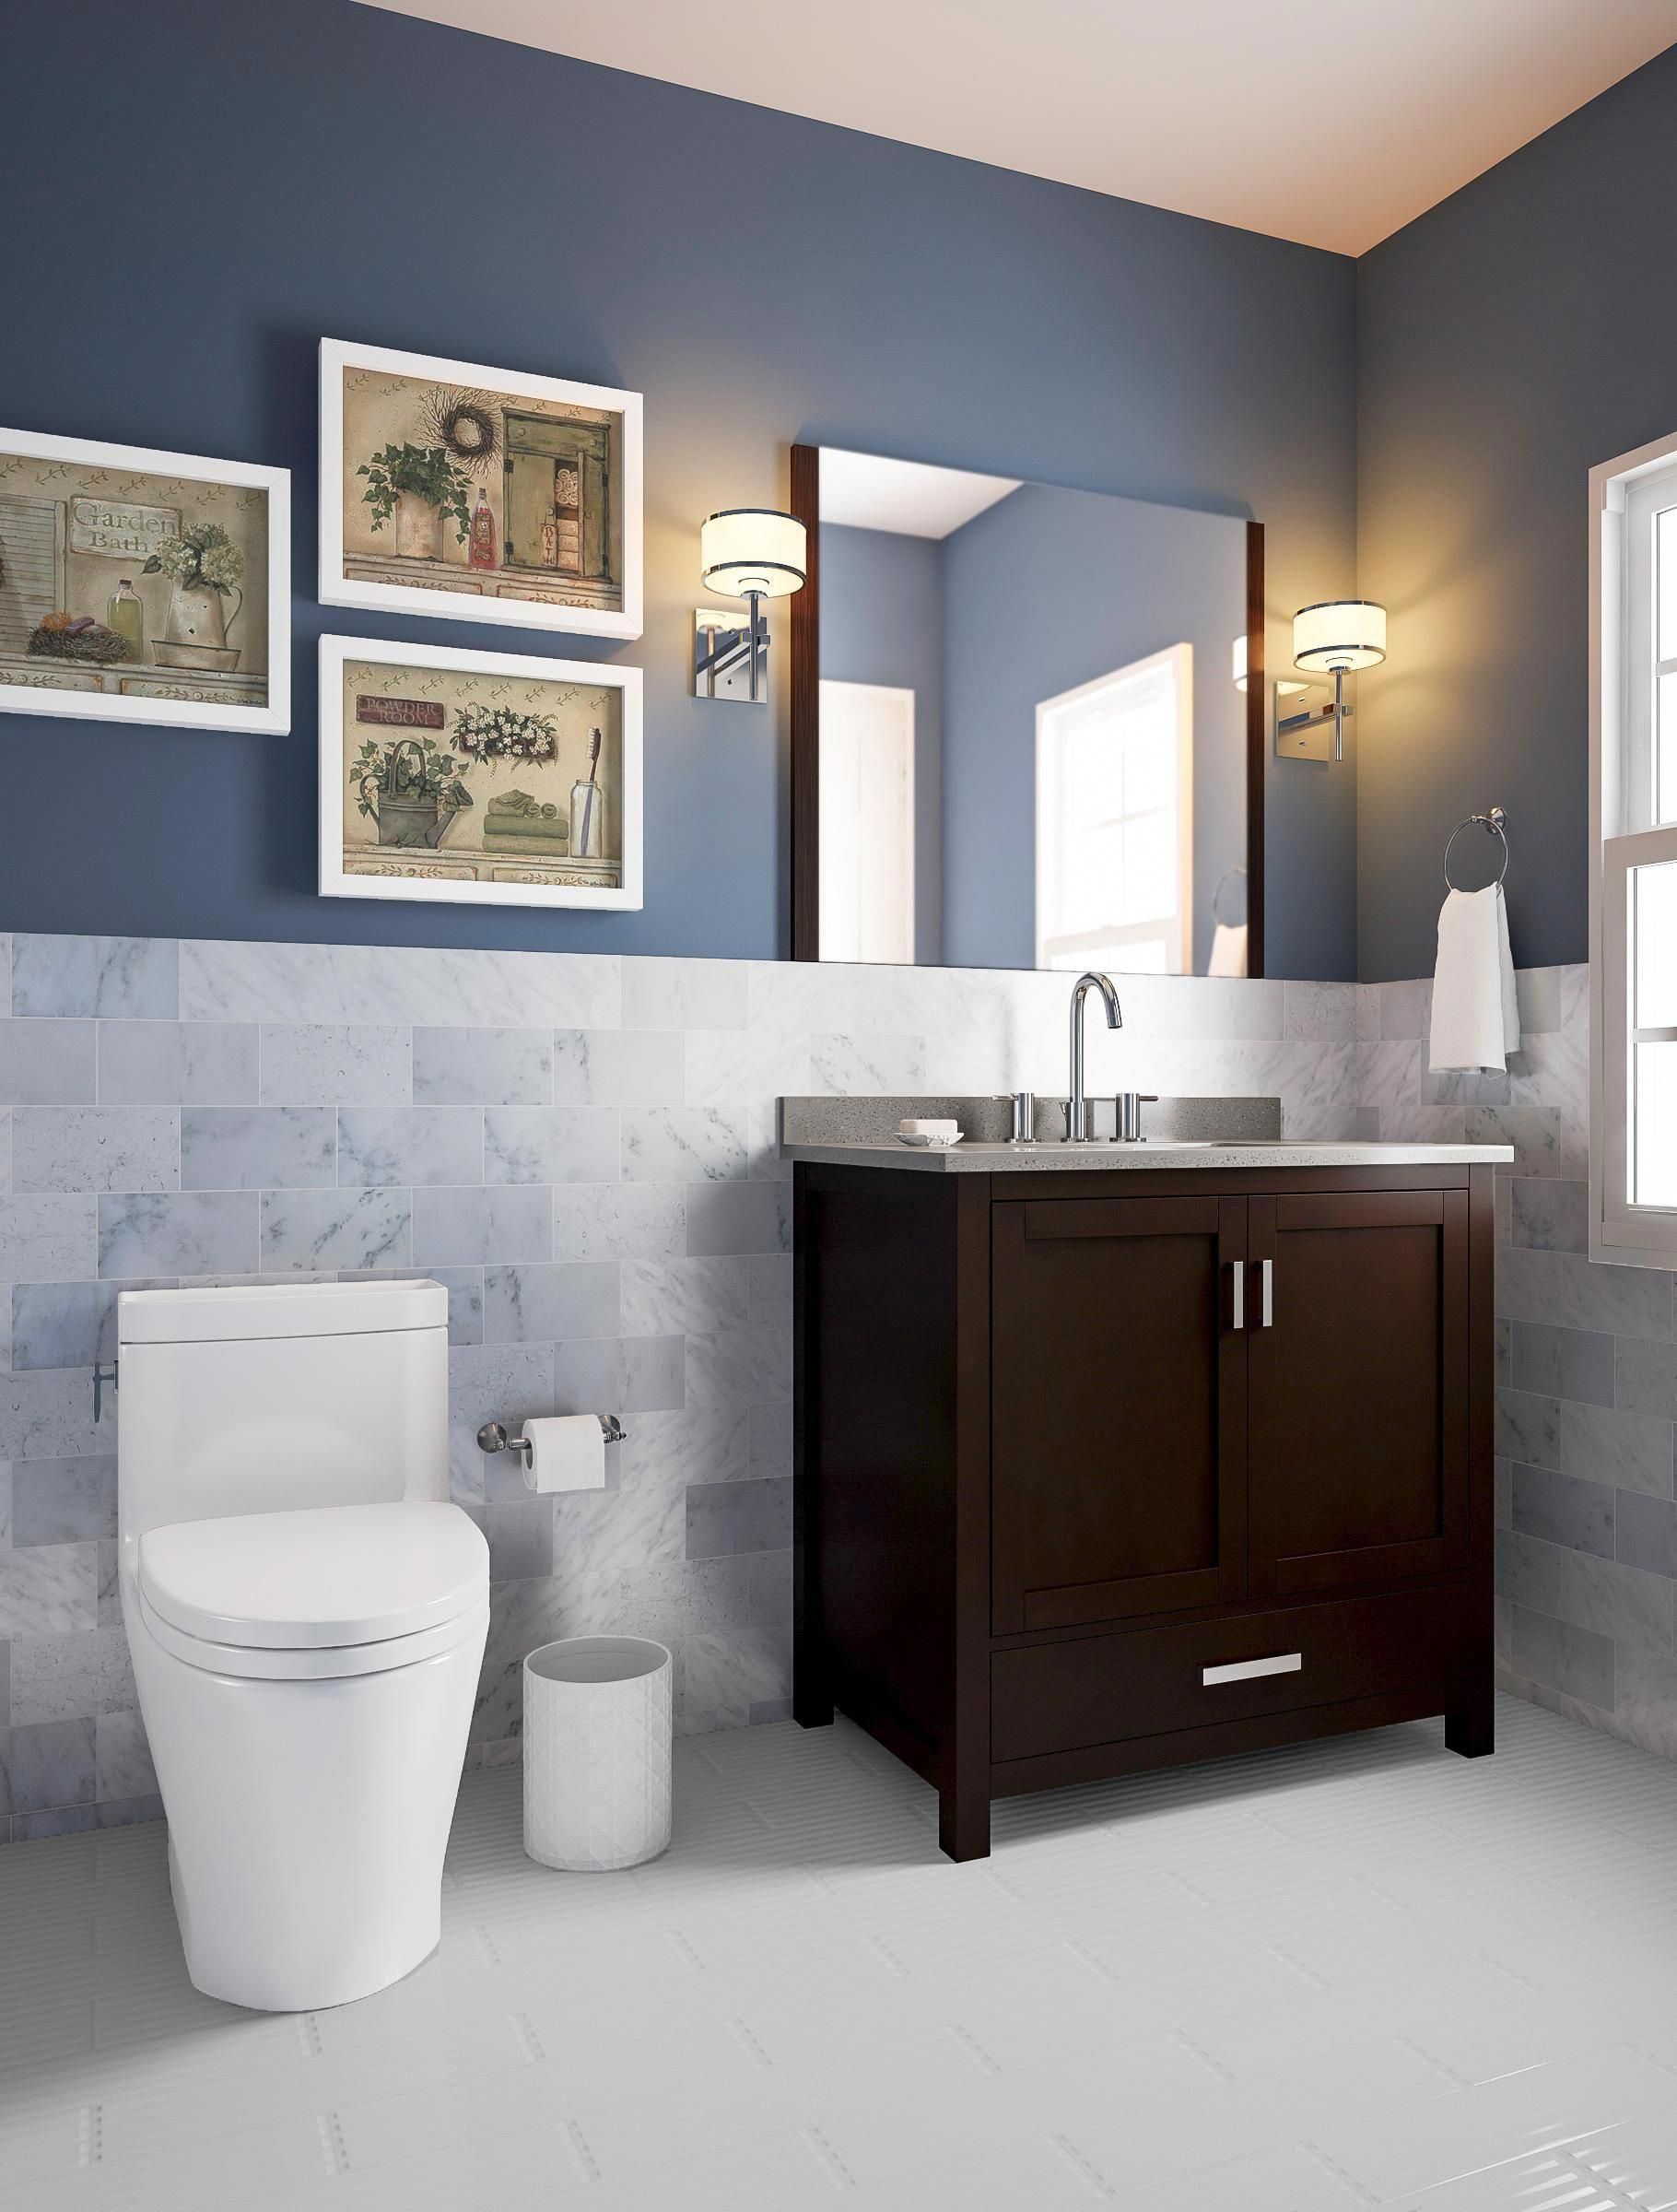 Pin On Best Diy Remodeling Tips